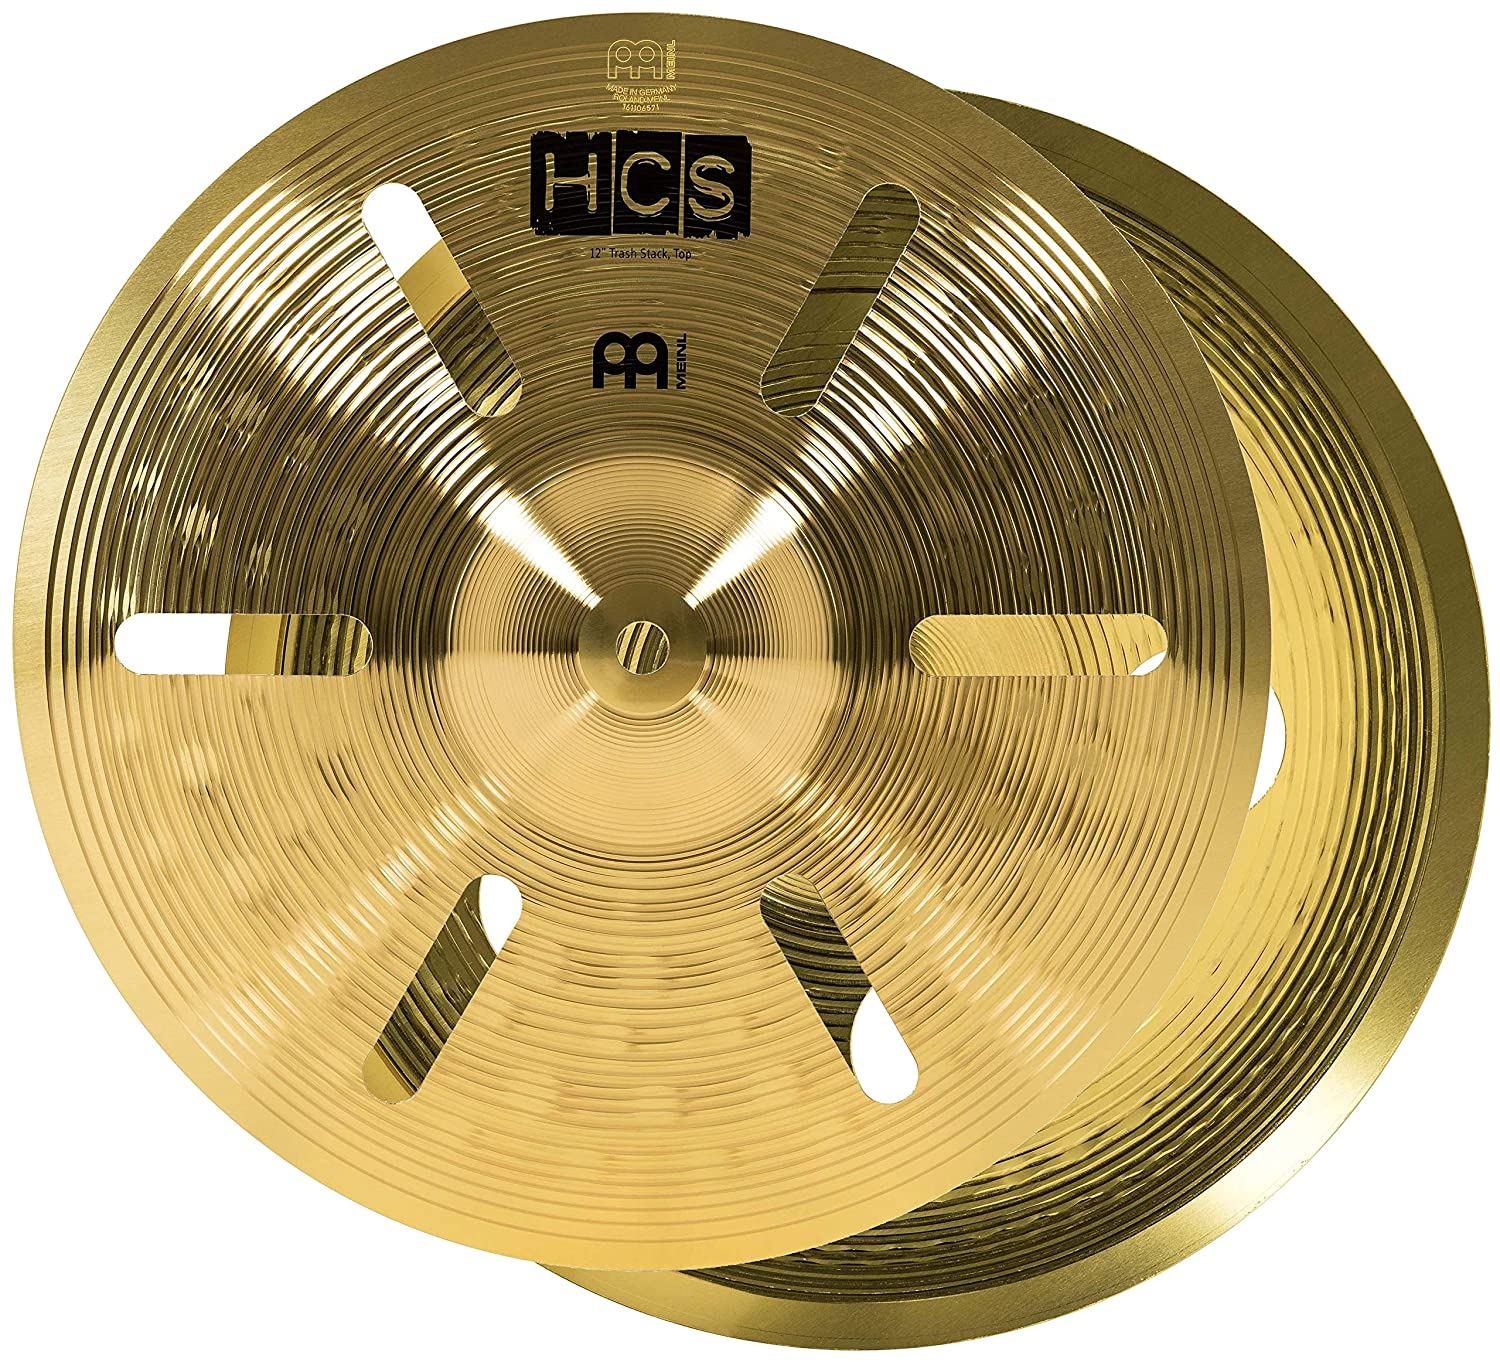 """Meinl Ultimate Cymbal Set Box Pack with FREE 16"""" Trash Crash – HCS Traditional Finish Brass – Made In Germany, TWO YEAR WARRANTY (HCS-SCS1) Meinl USA L.C."""